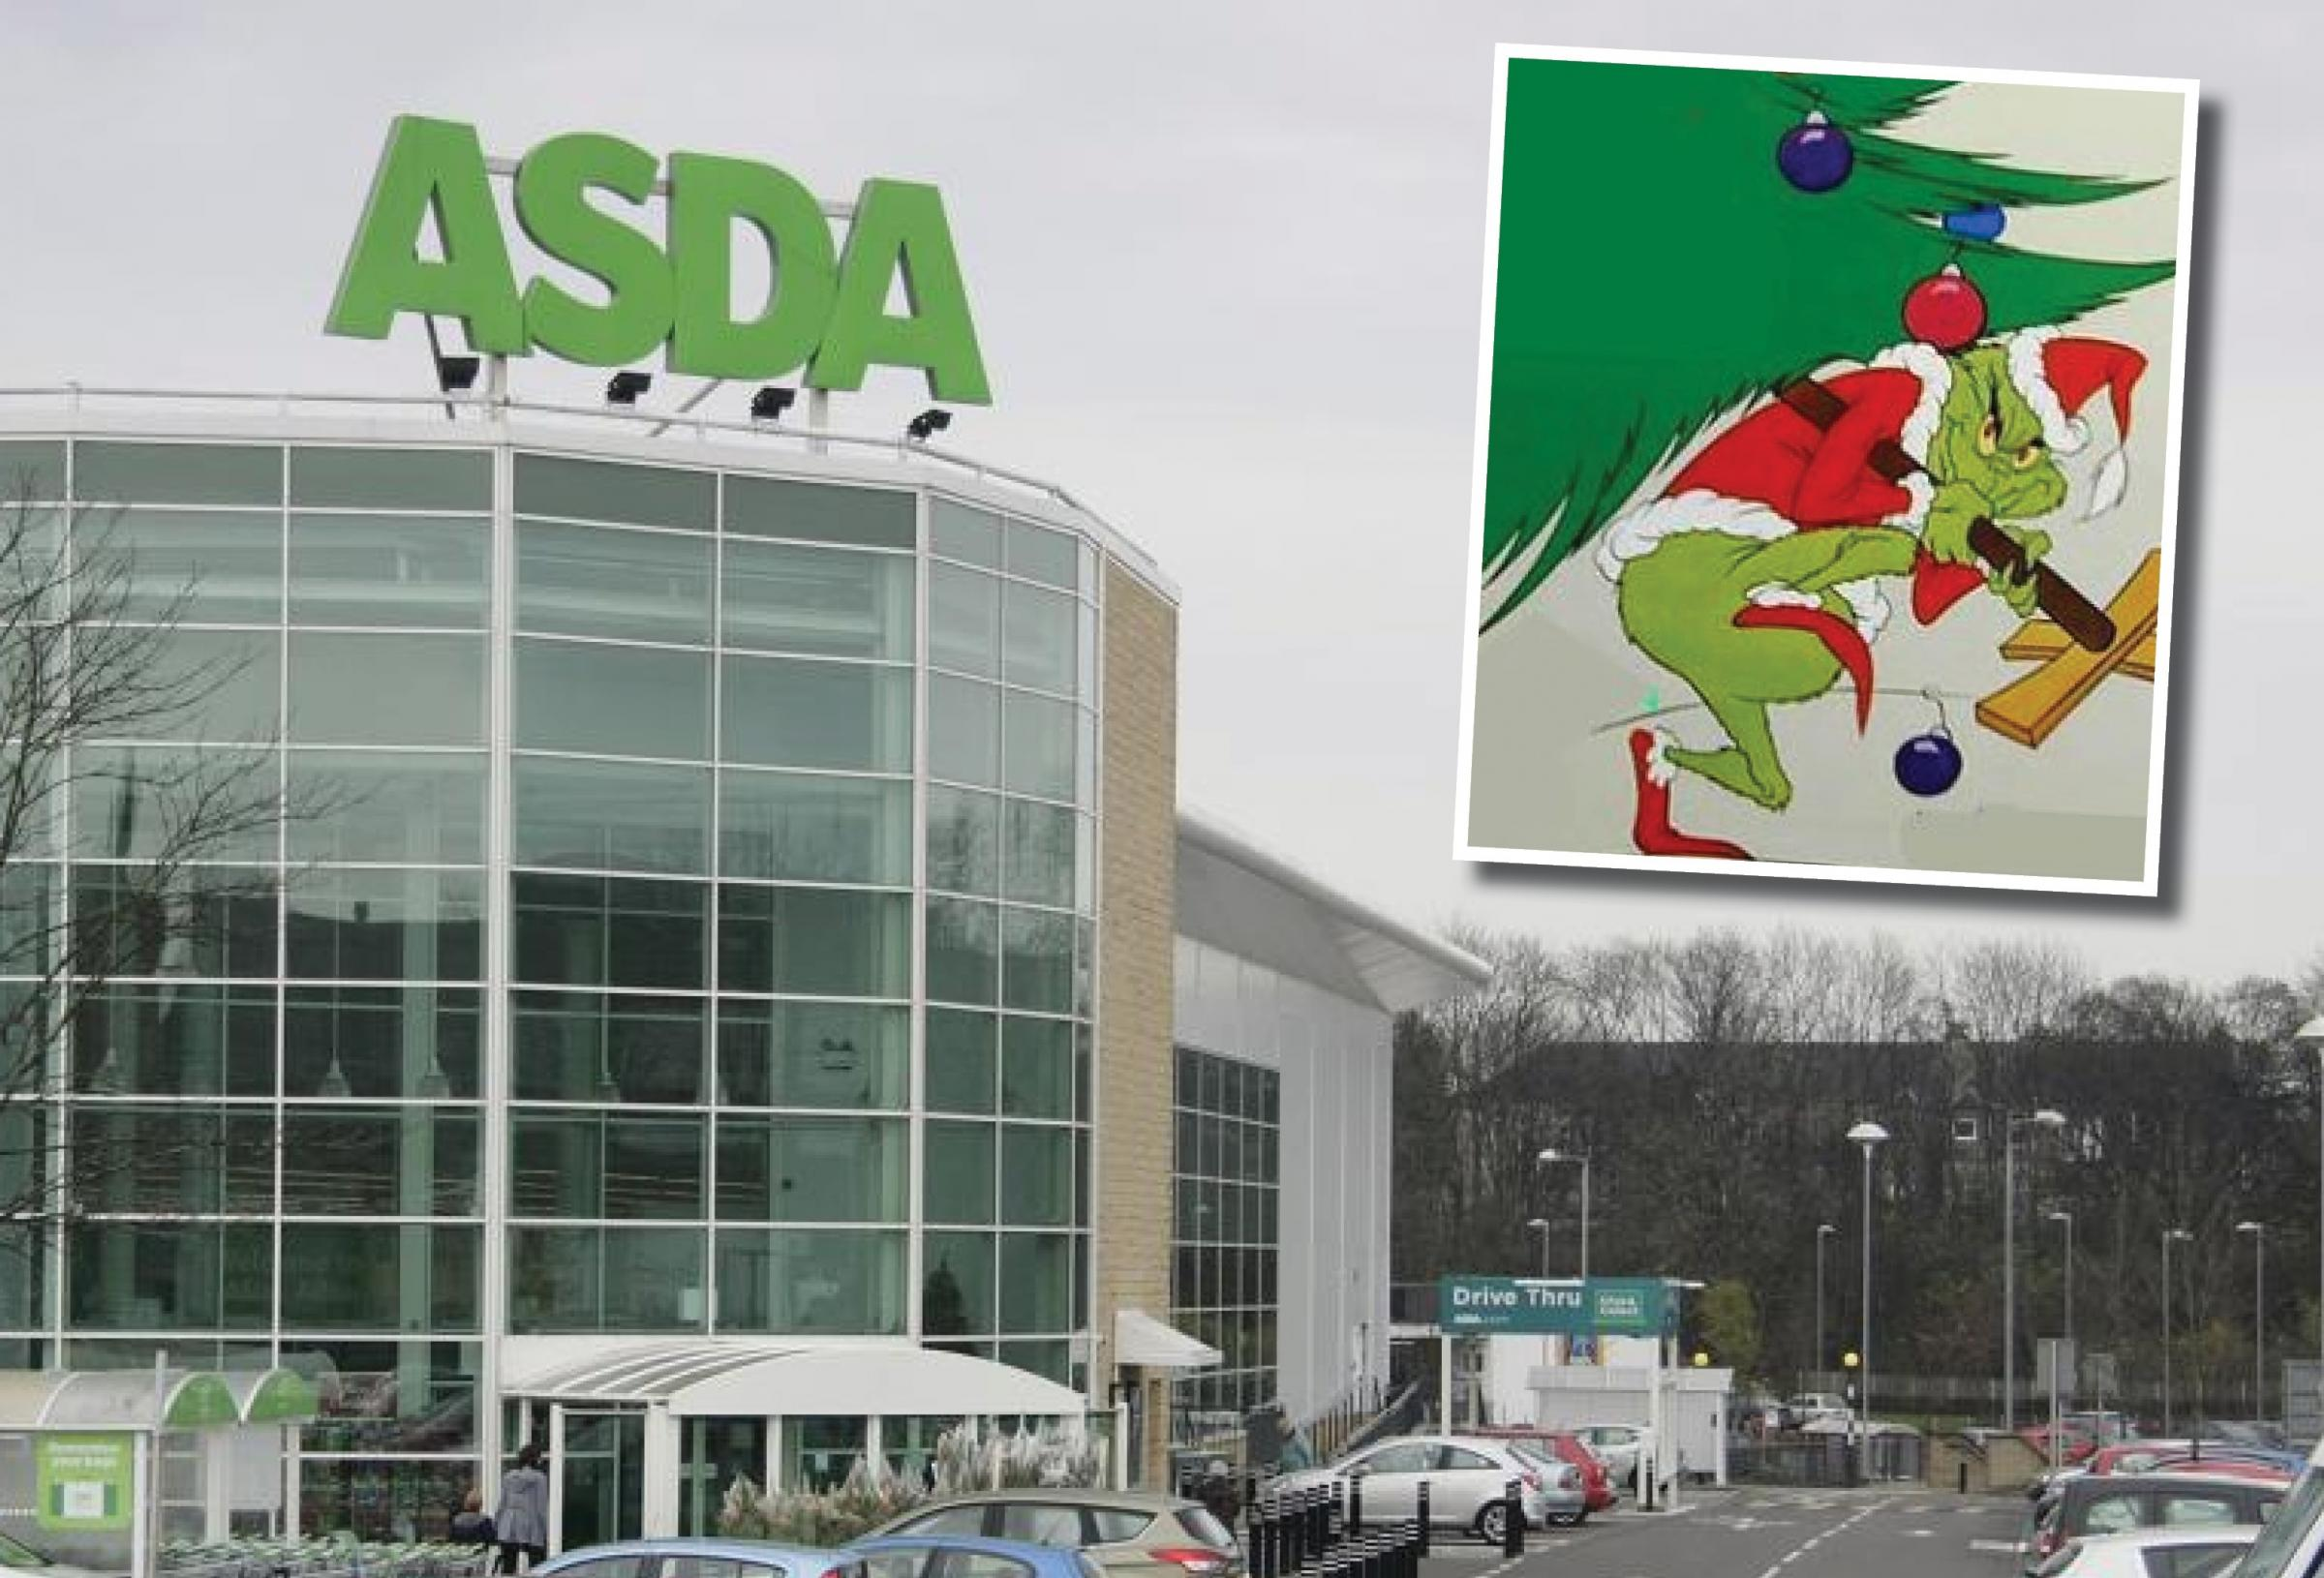 Tree Theft Two Man Pinched A Christmas Tree From Asda Last Weekend